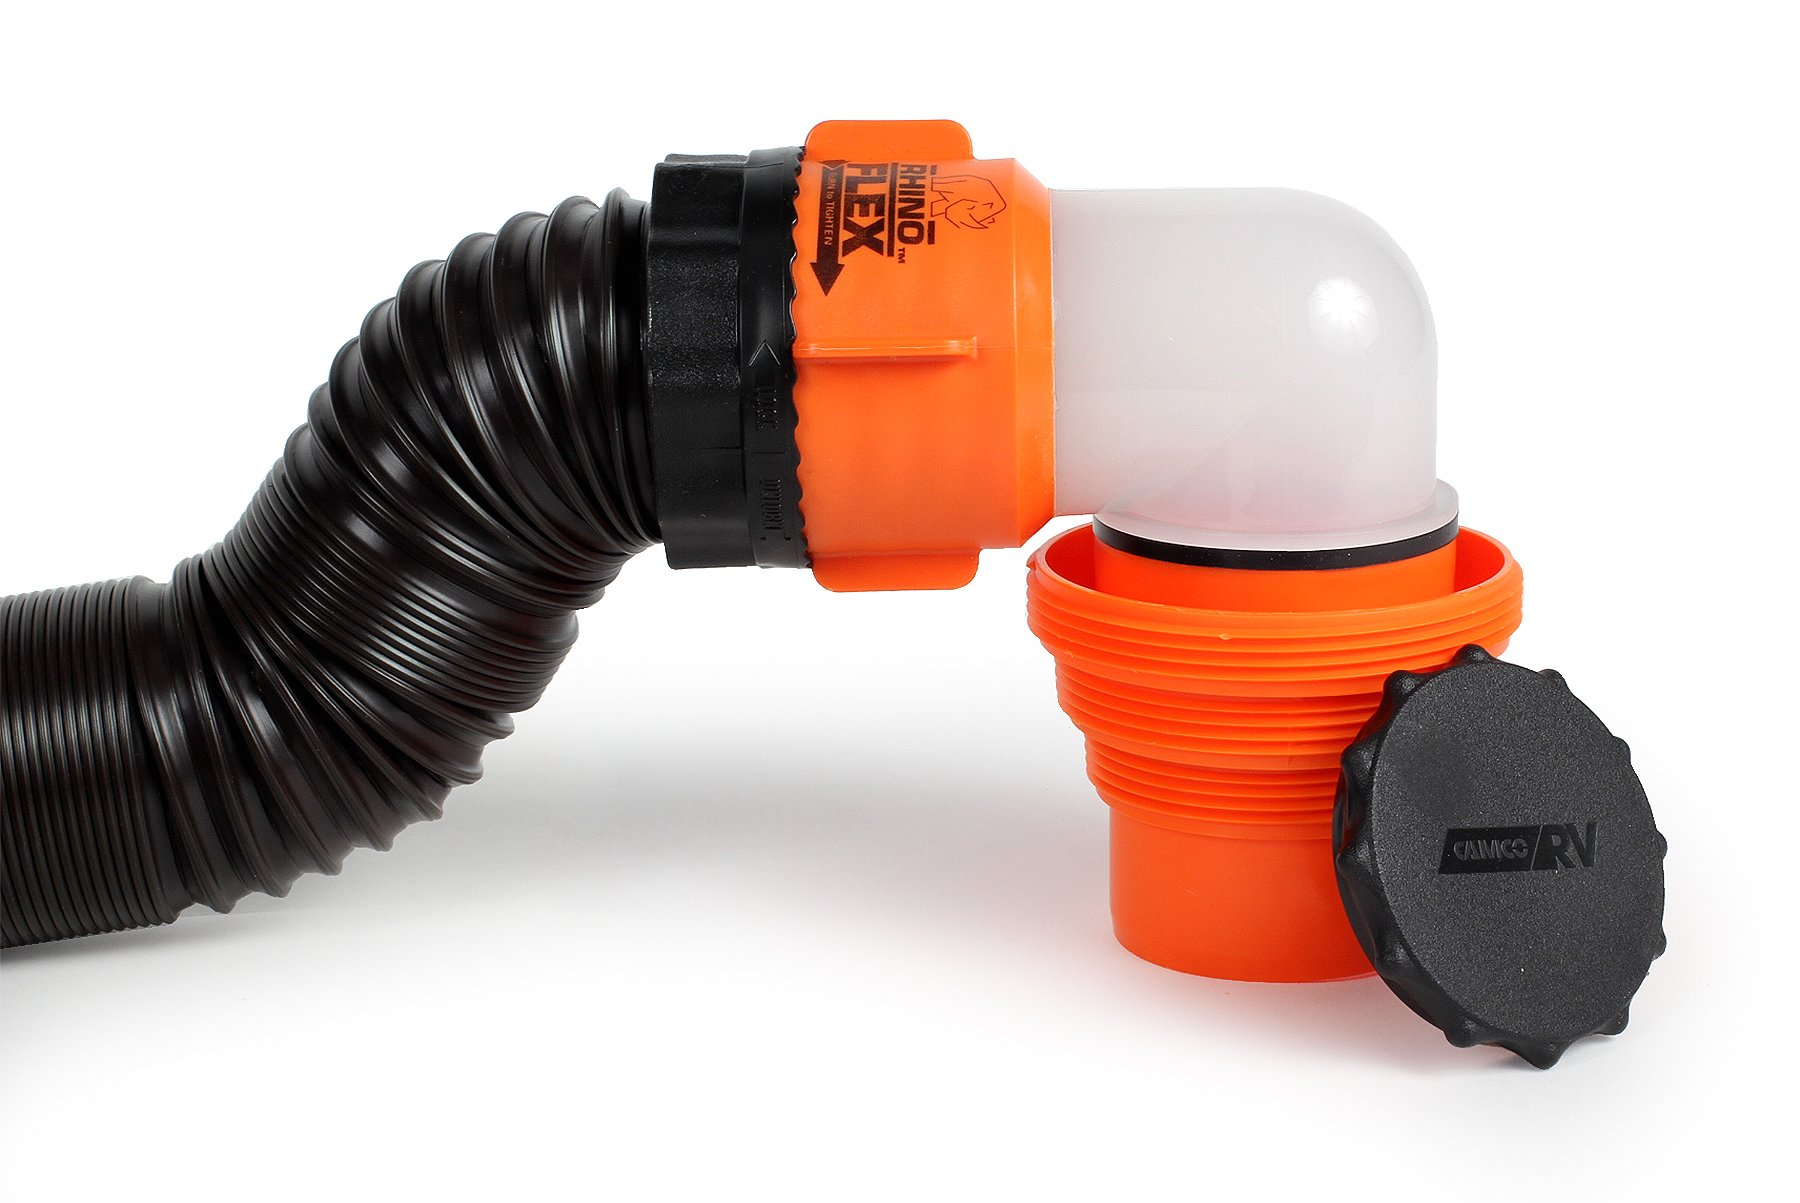 Camco rhinoflex ft rv sewer hose kit includes swivel